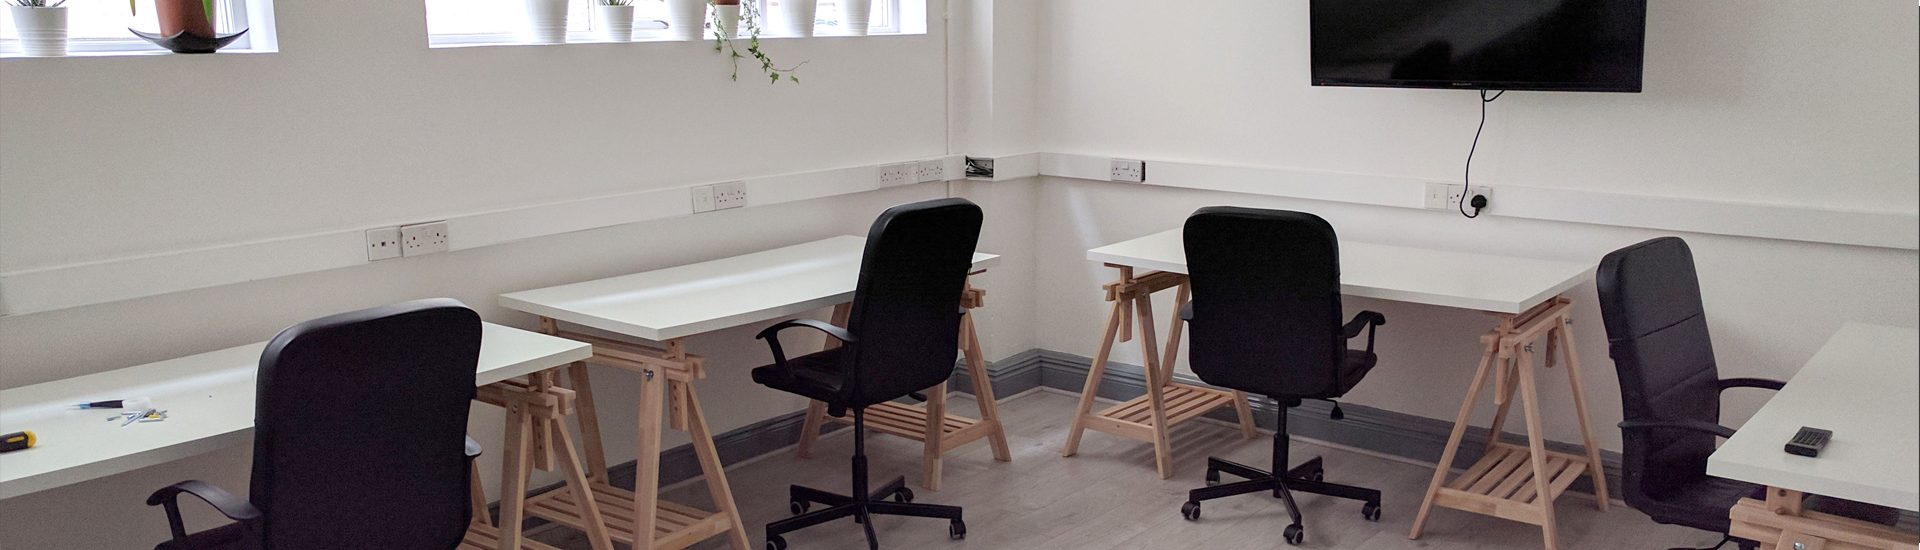 61 North Shared Working Space Wexford Shared Office.jpg